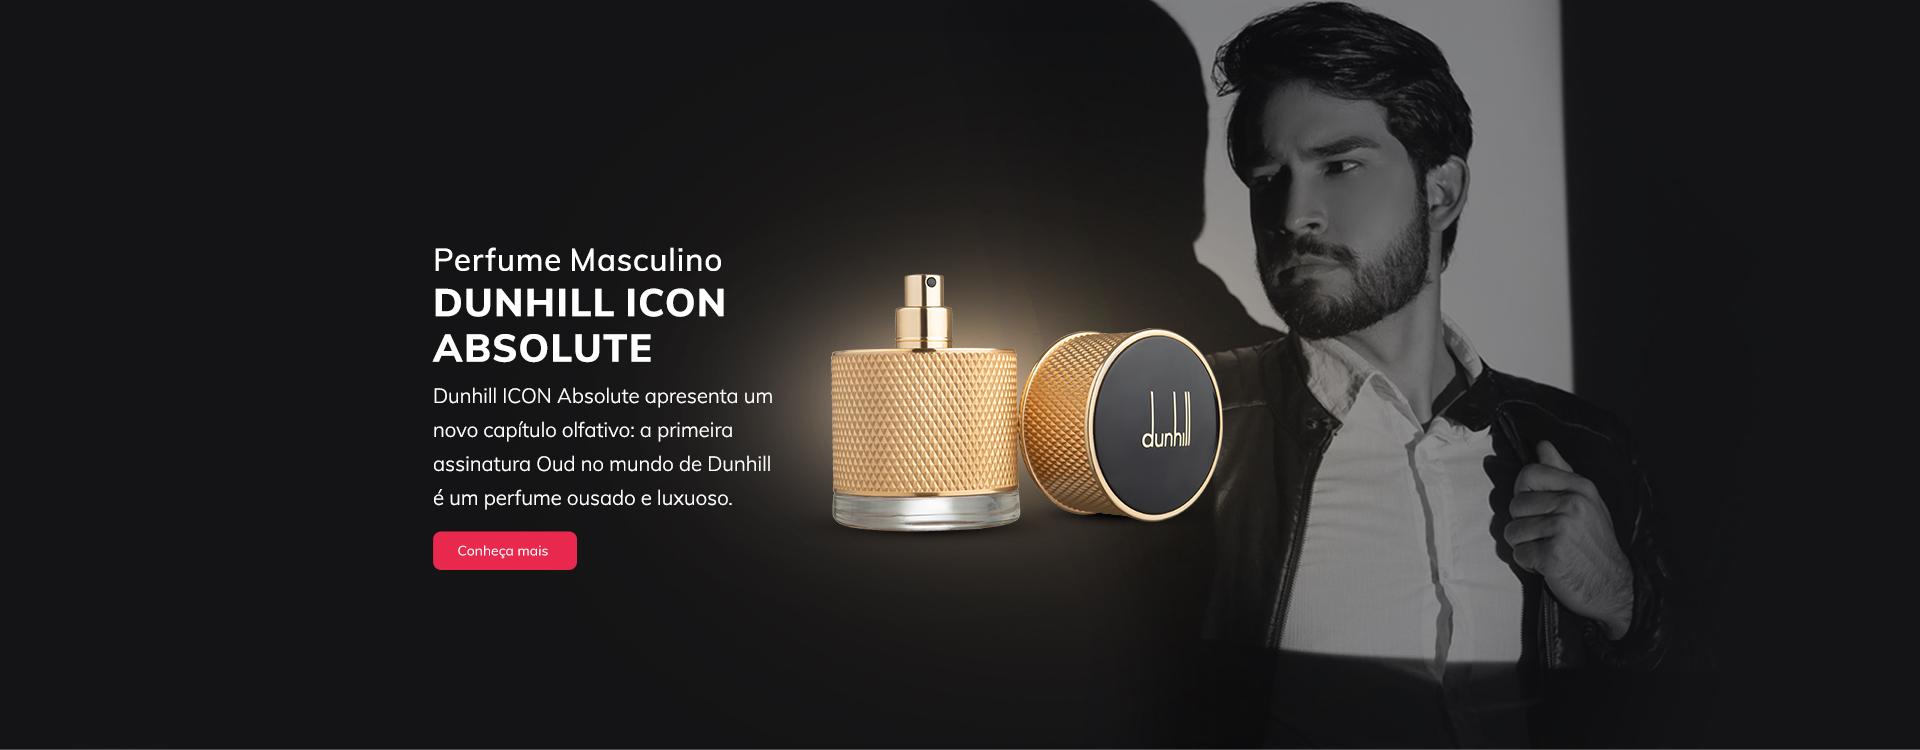 banner Dunhill